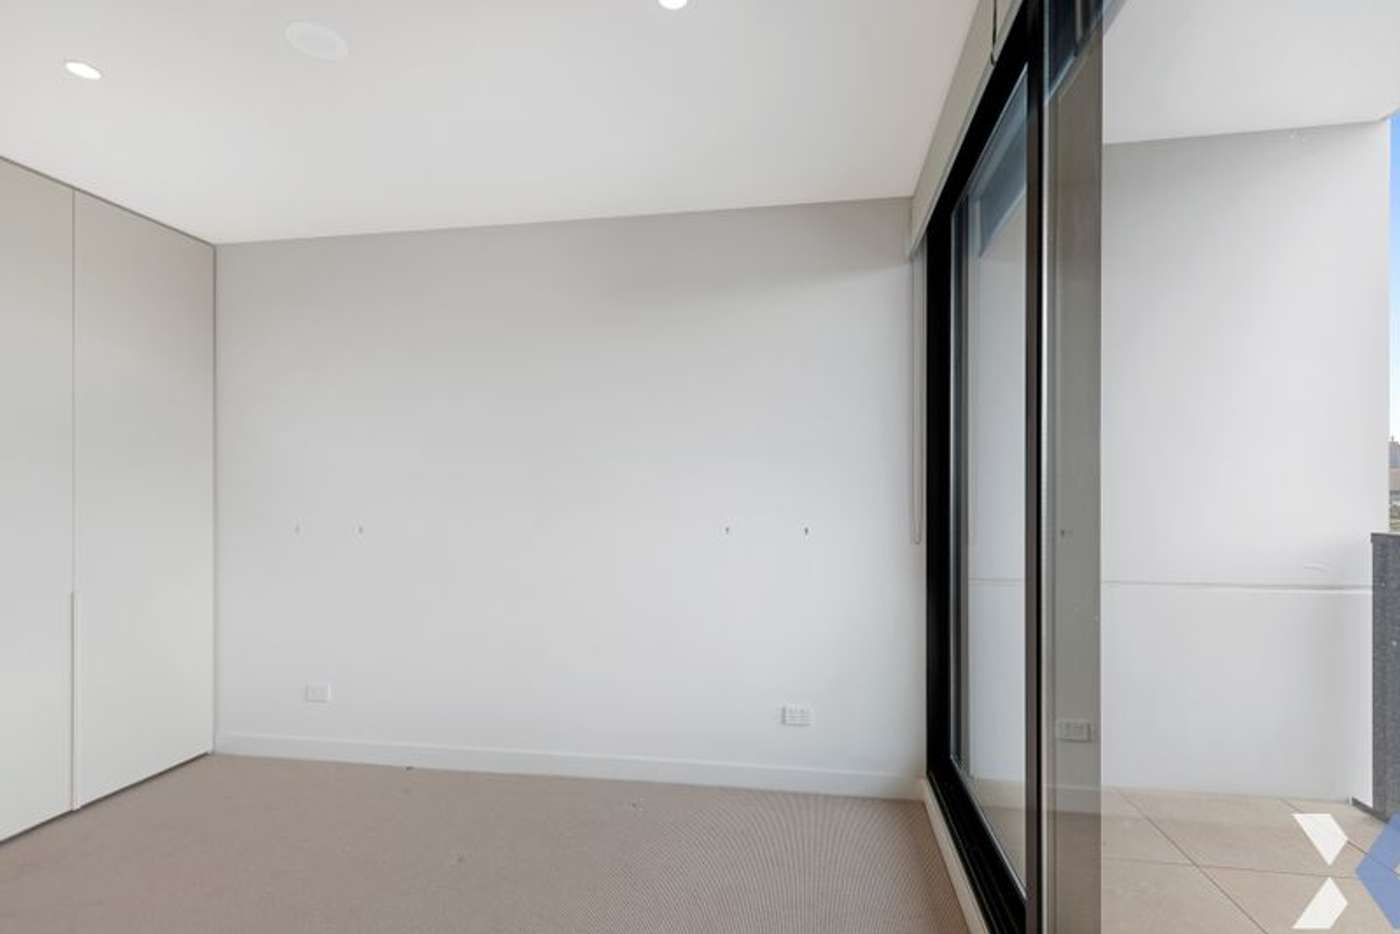 Fifth view of Homely apartment listing, 901/665 Chapel Street, South Yarra VIC 3141